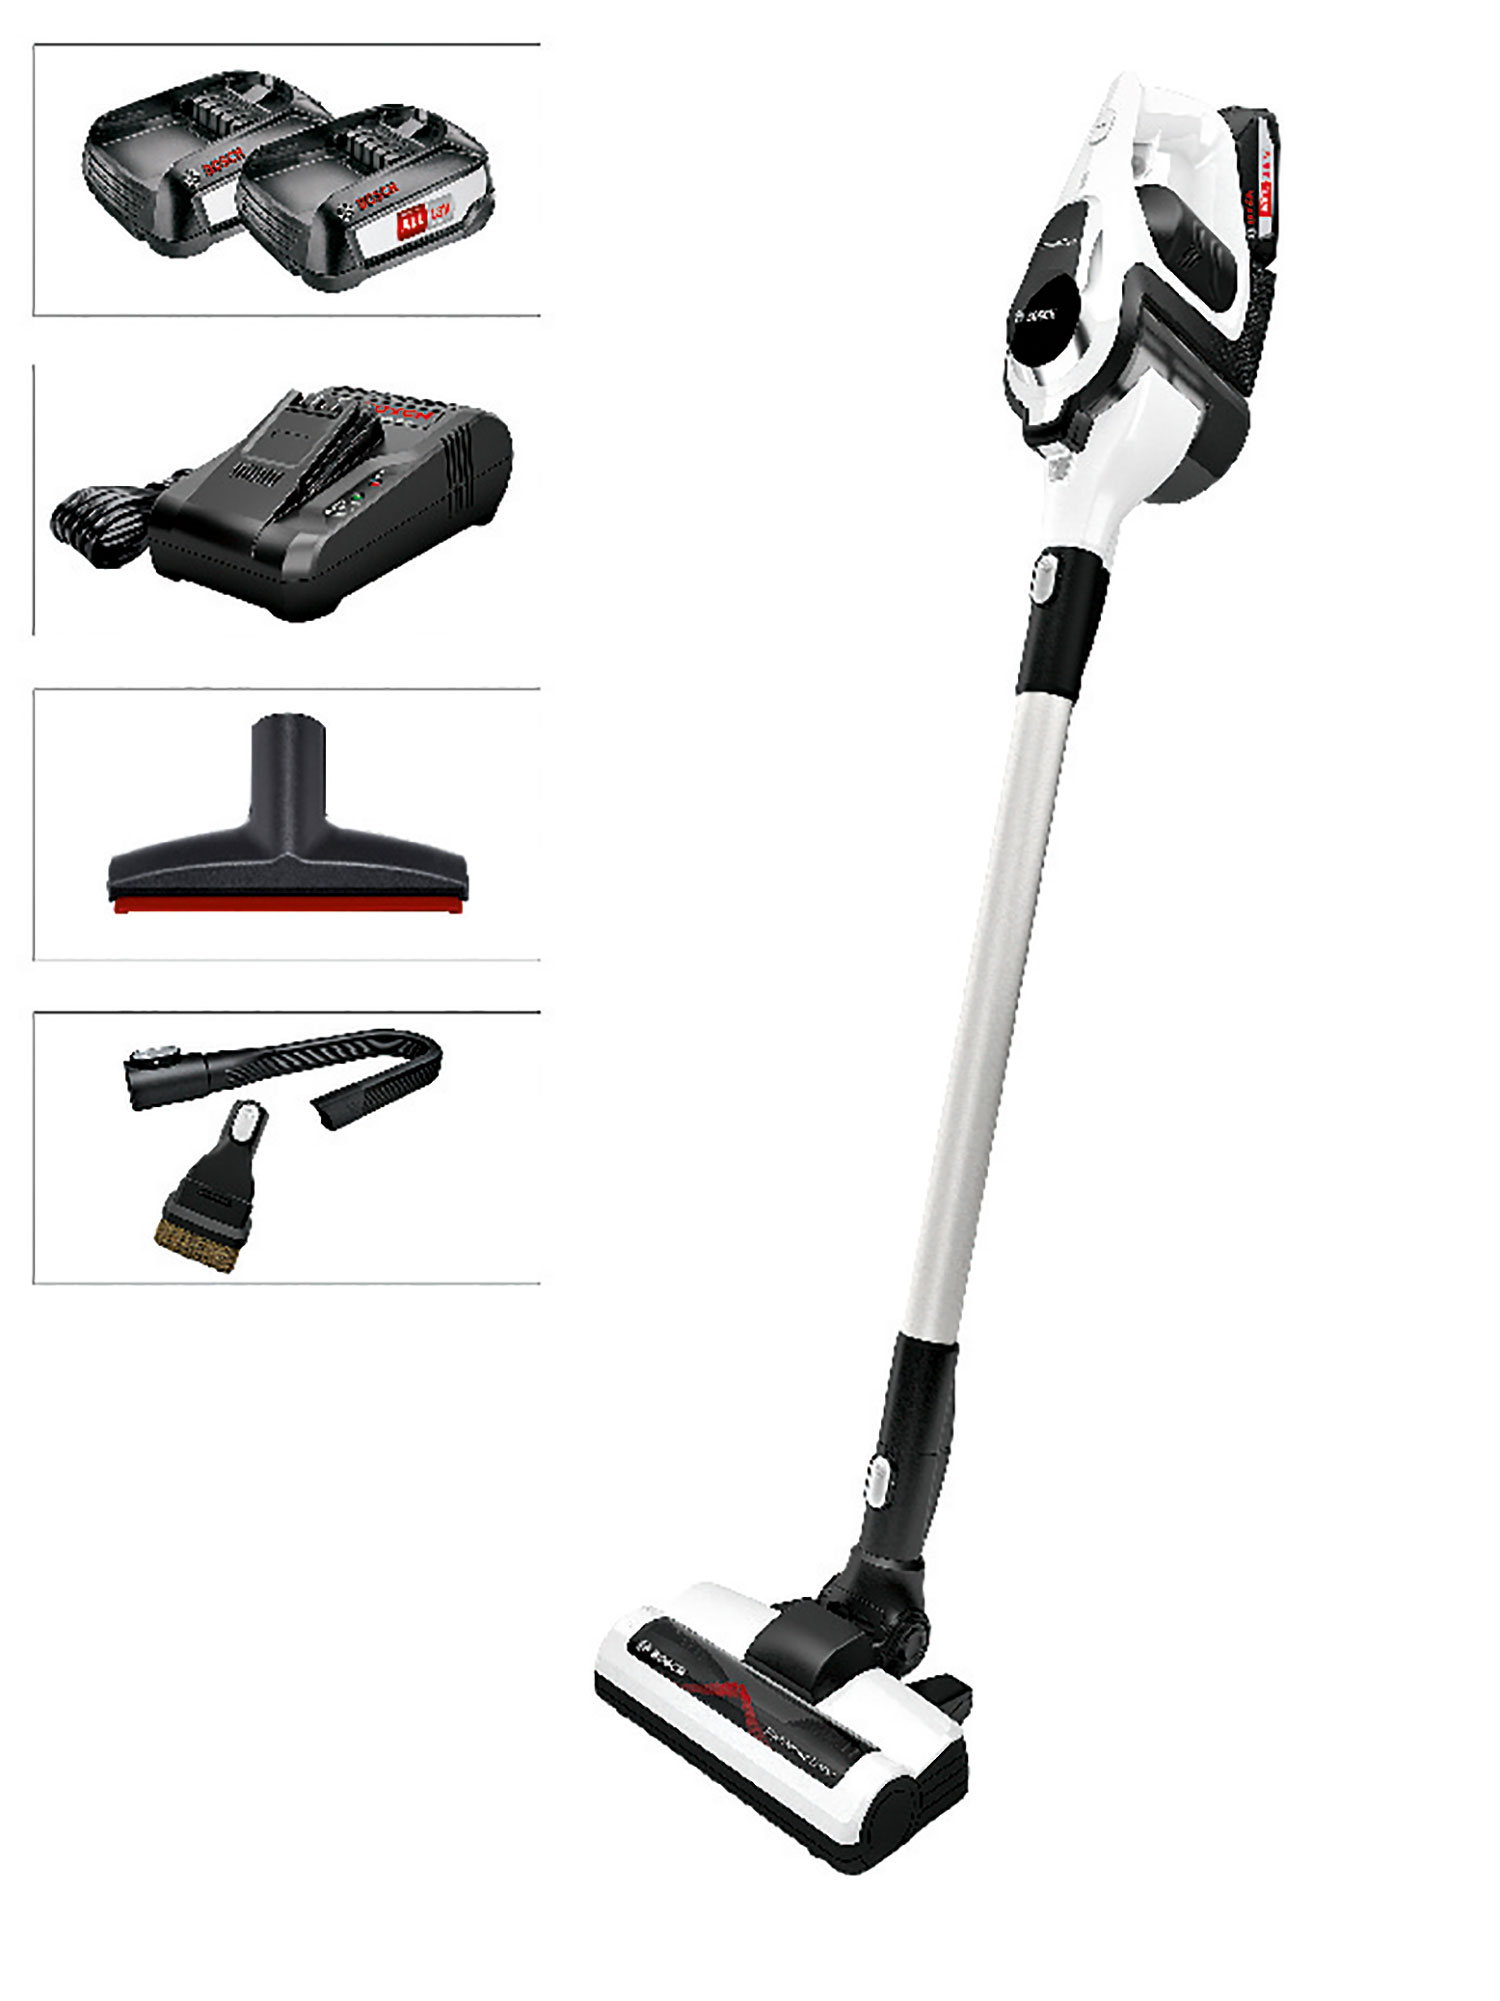 Bosch Launches Unlimited Cordless Vacuum Cleaner